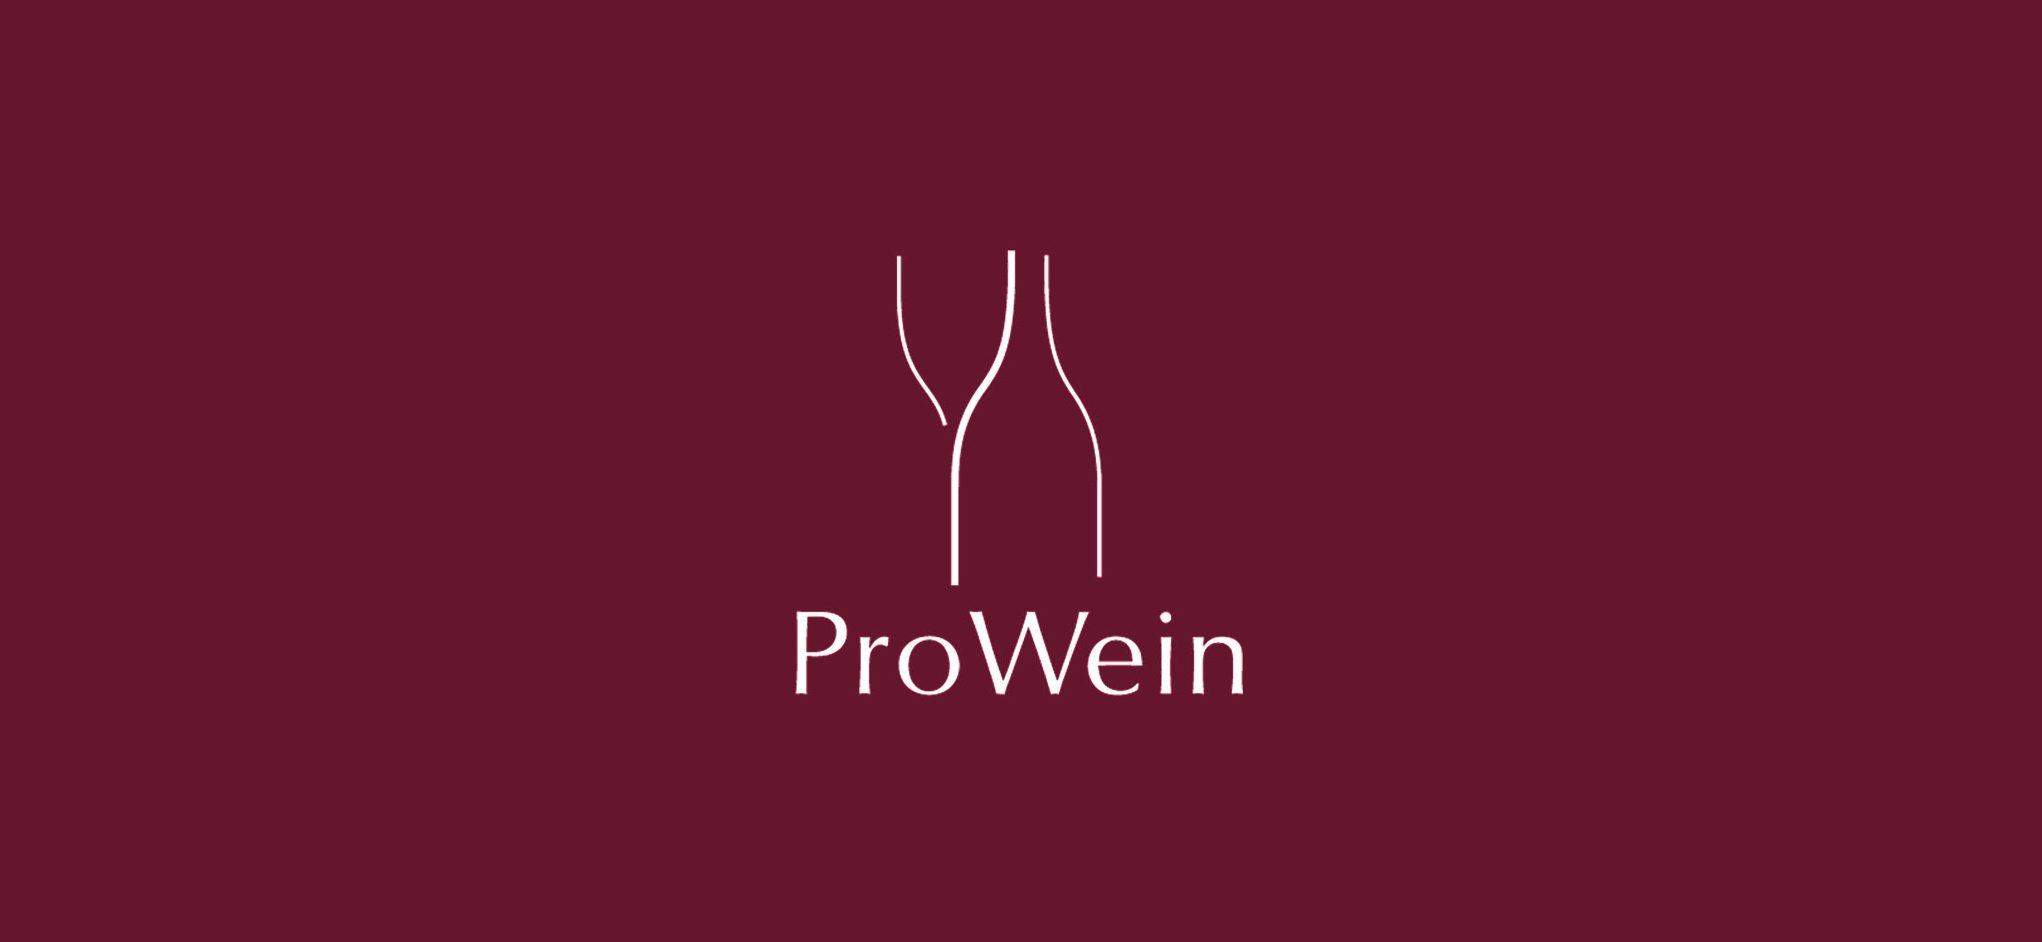 D.O.5 Hispanobodegas will be present at the Prowein fair